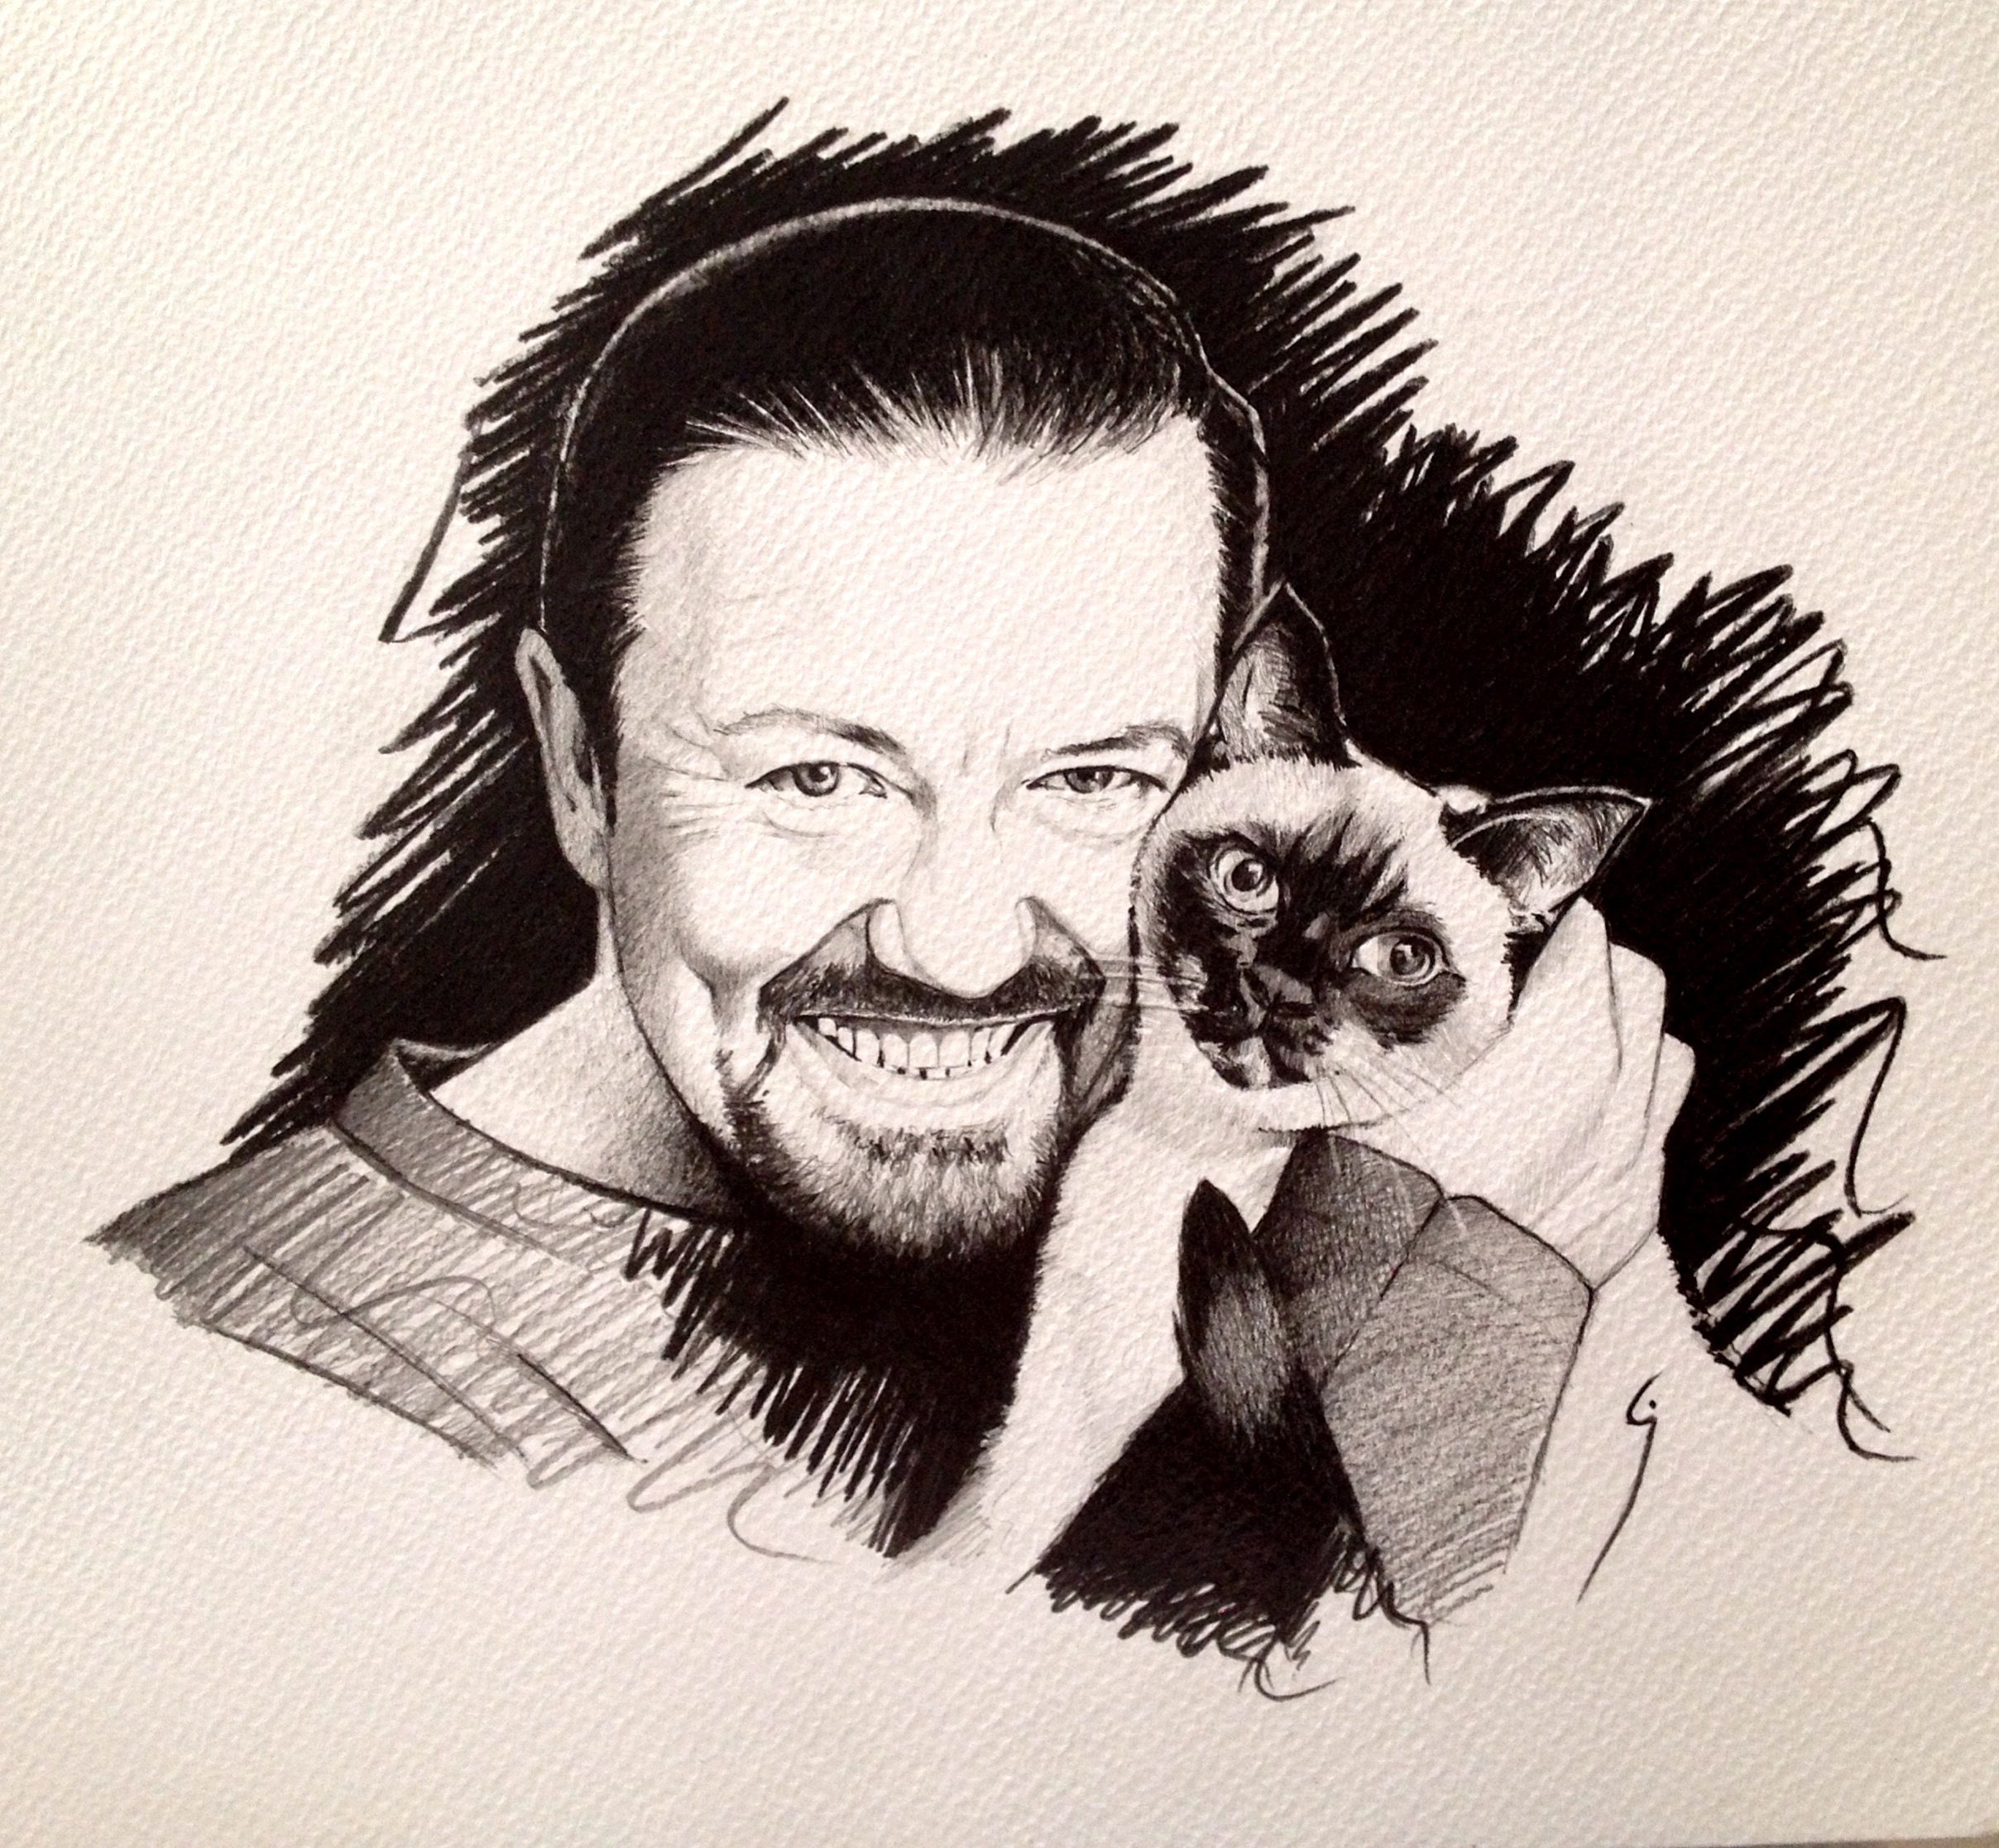 Ricky Gervais is definitely a CAT person!